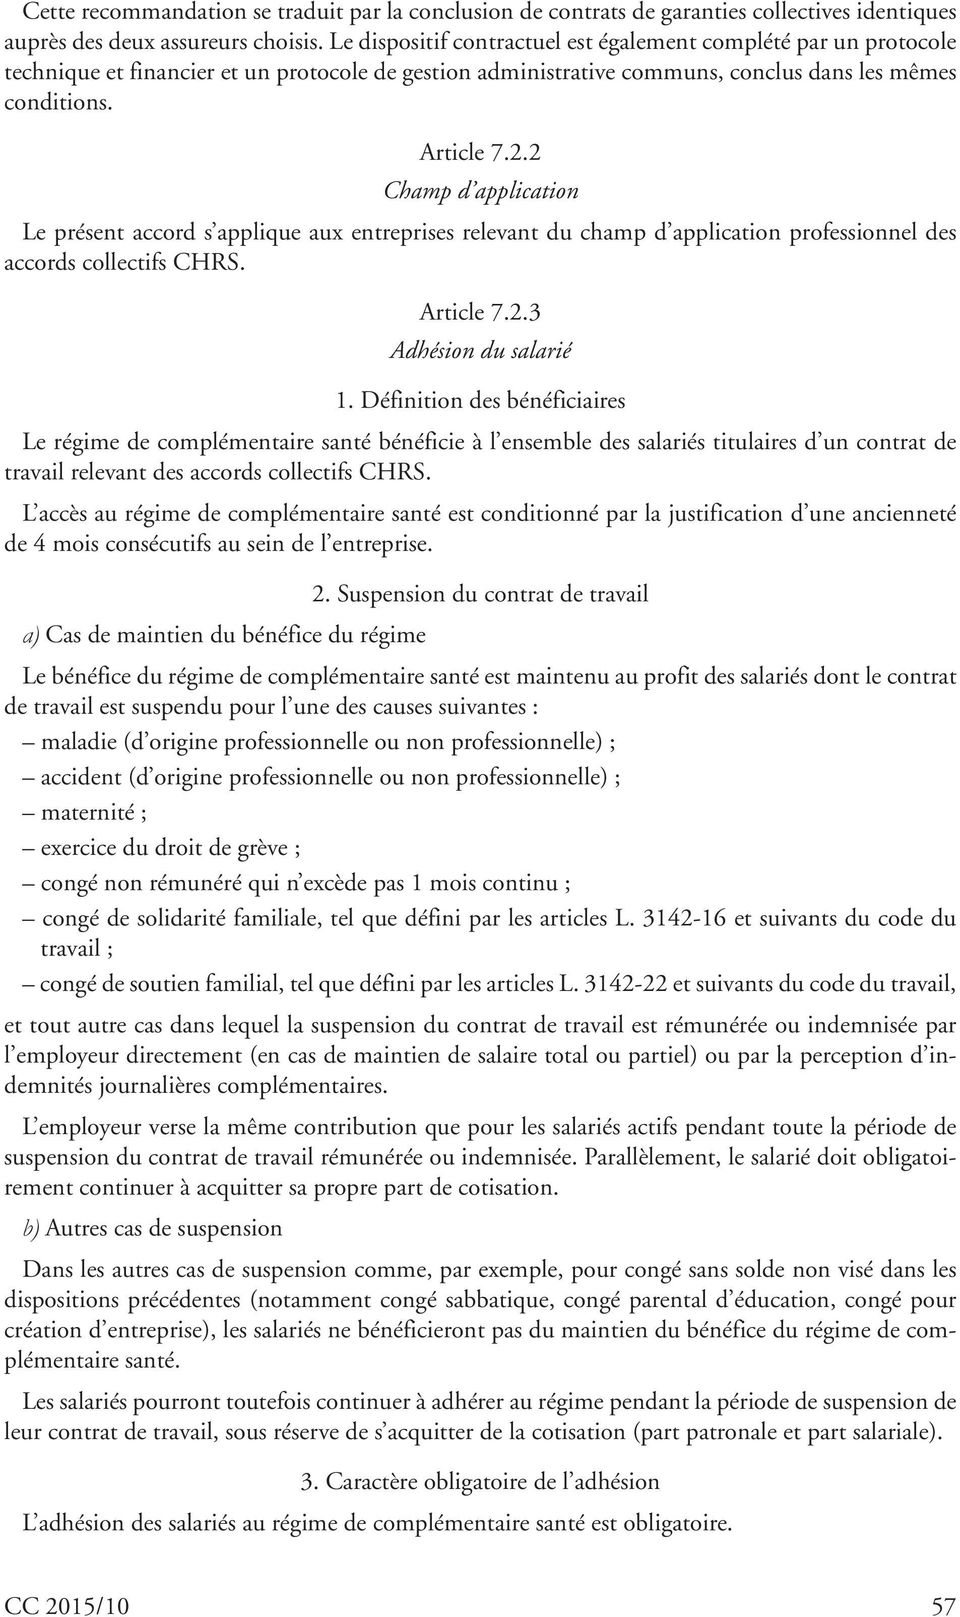 2 Champ d application Le présent accord s applique aux entreprises relevant du champ d application professionnel des accords collectifs CHRS. Article 7.2.3 Adhésion du salarié 1.